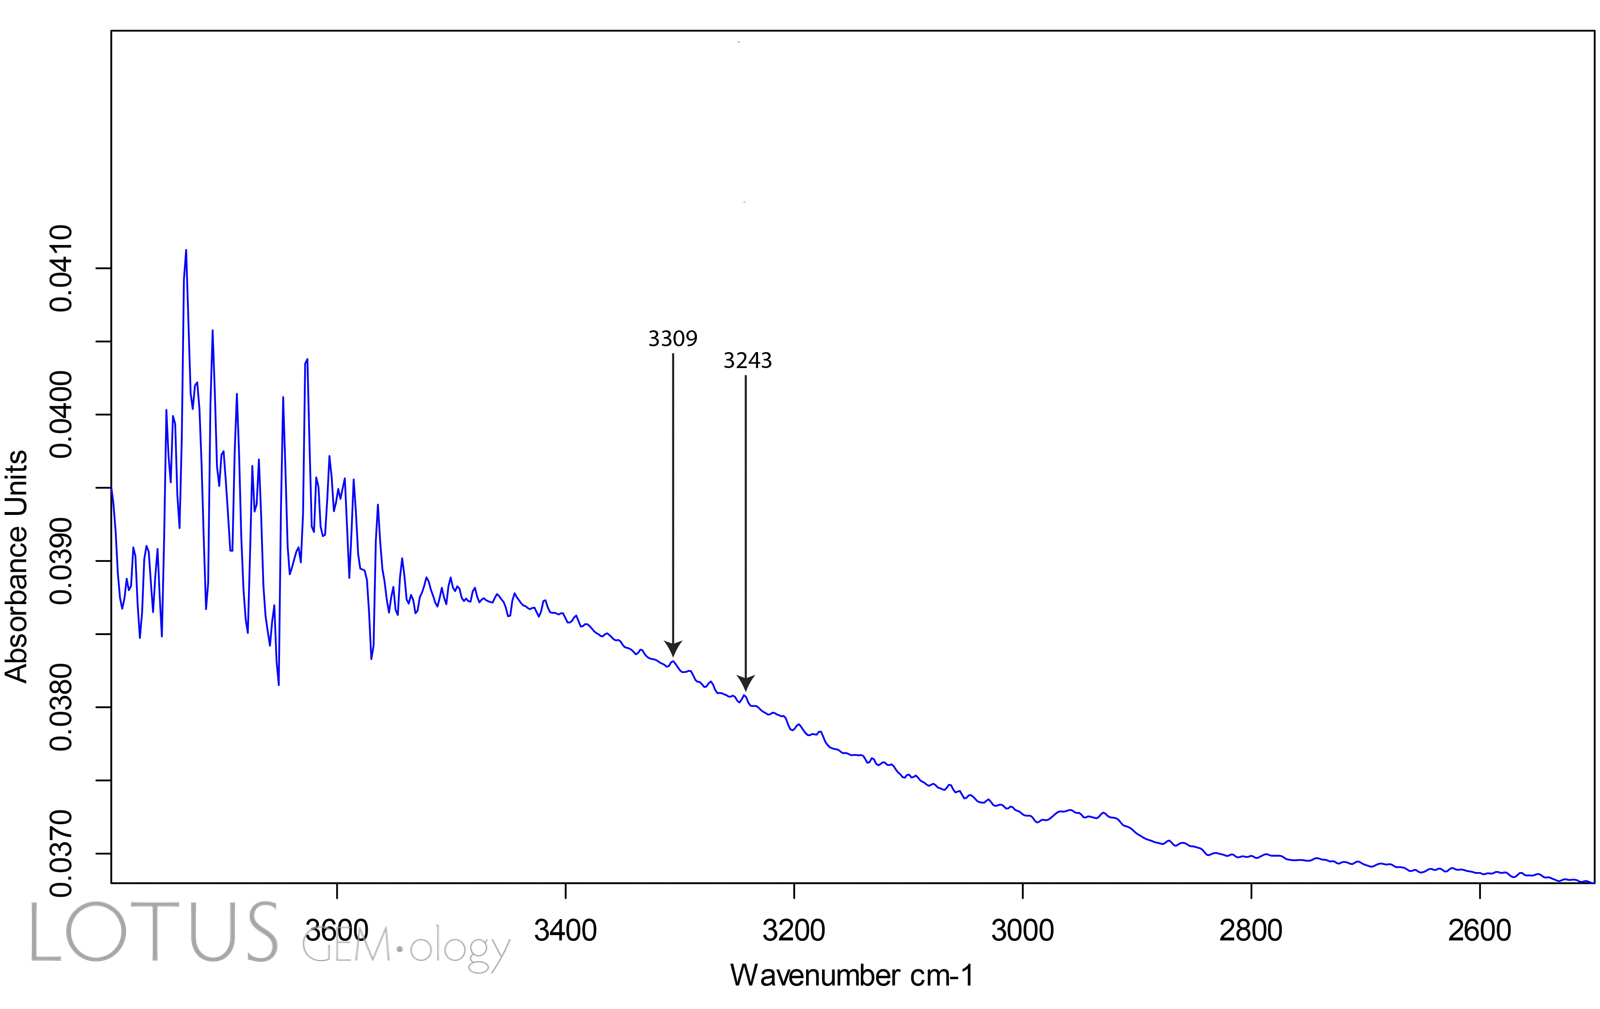 Figure 2. Infrared spectrum of a Madagascar pink sapphire using the Pike 4x beam condenser collection attachment. This sends a narrow beam through the gem. Using this technique, the 3309 cm-1 was at the noise floor, while the 3232 cm-1 peak was not visible at all.